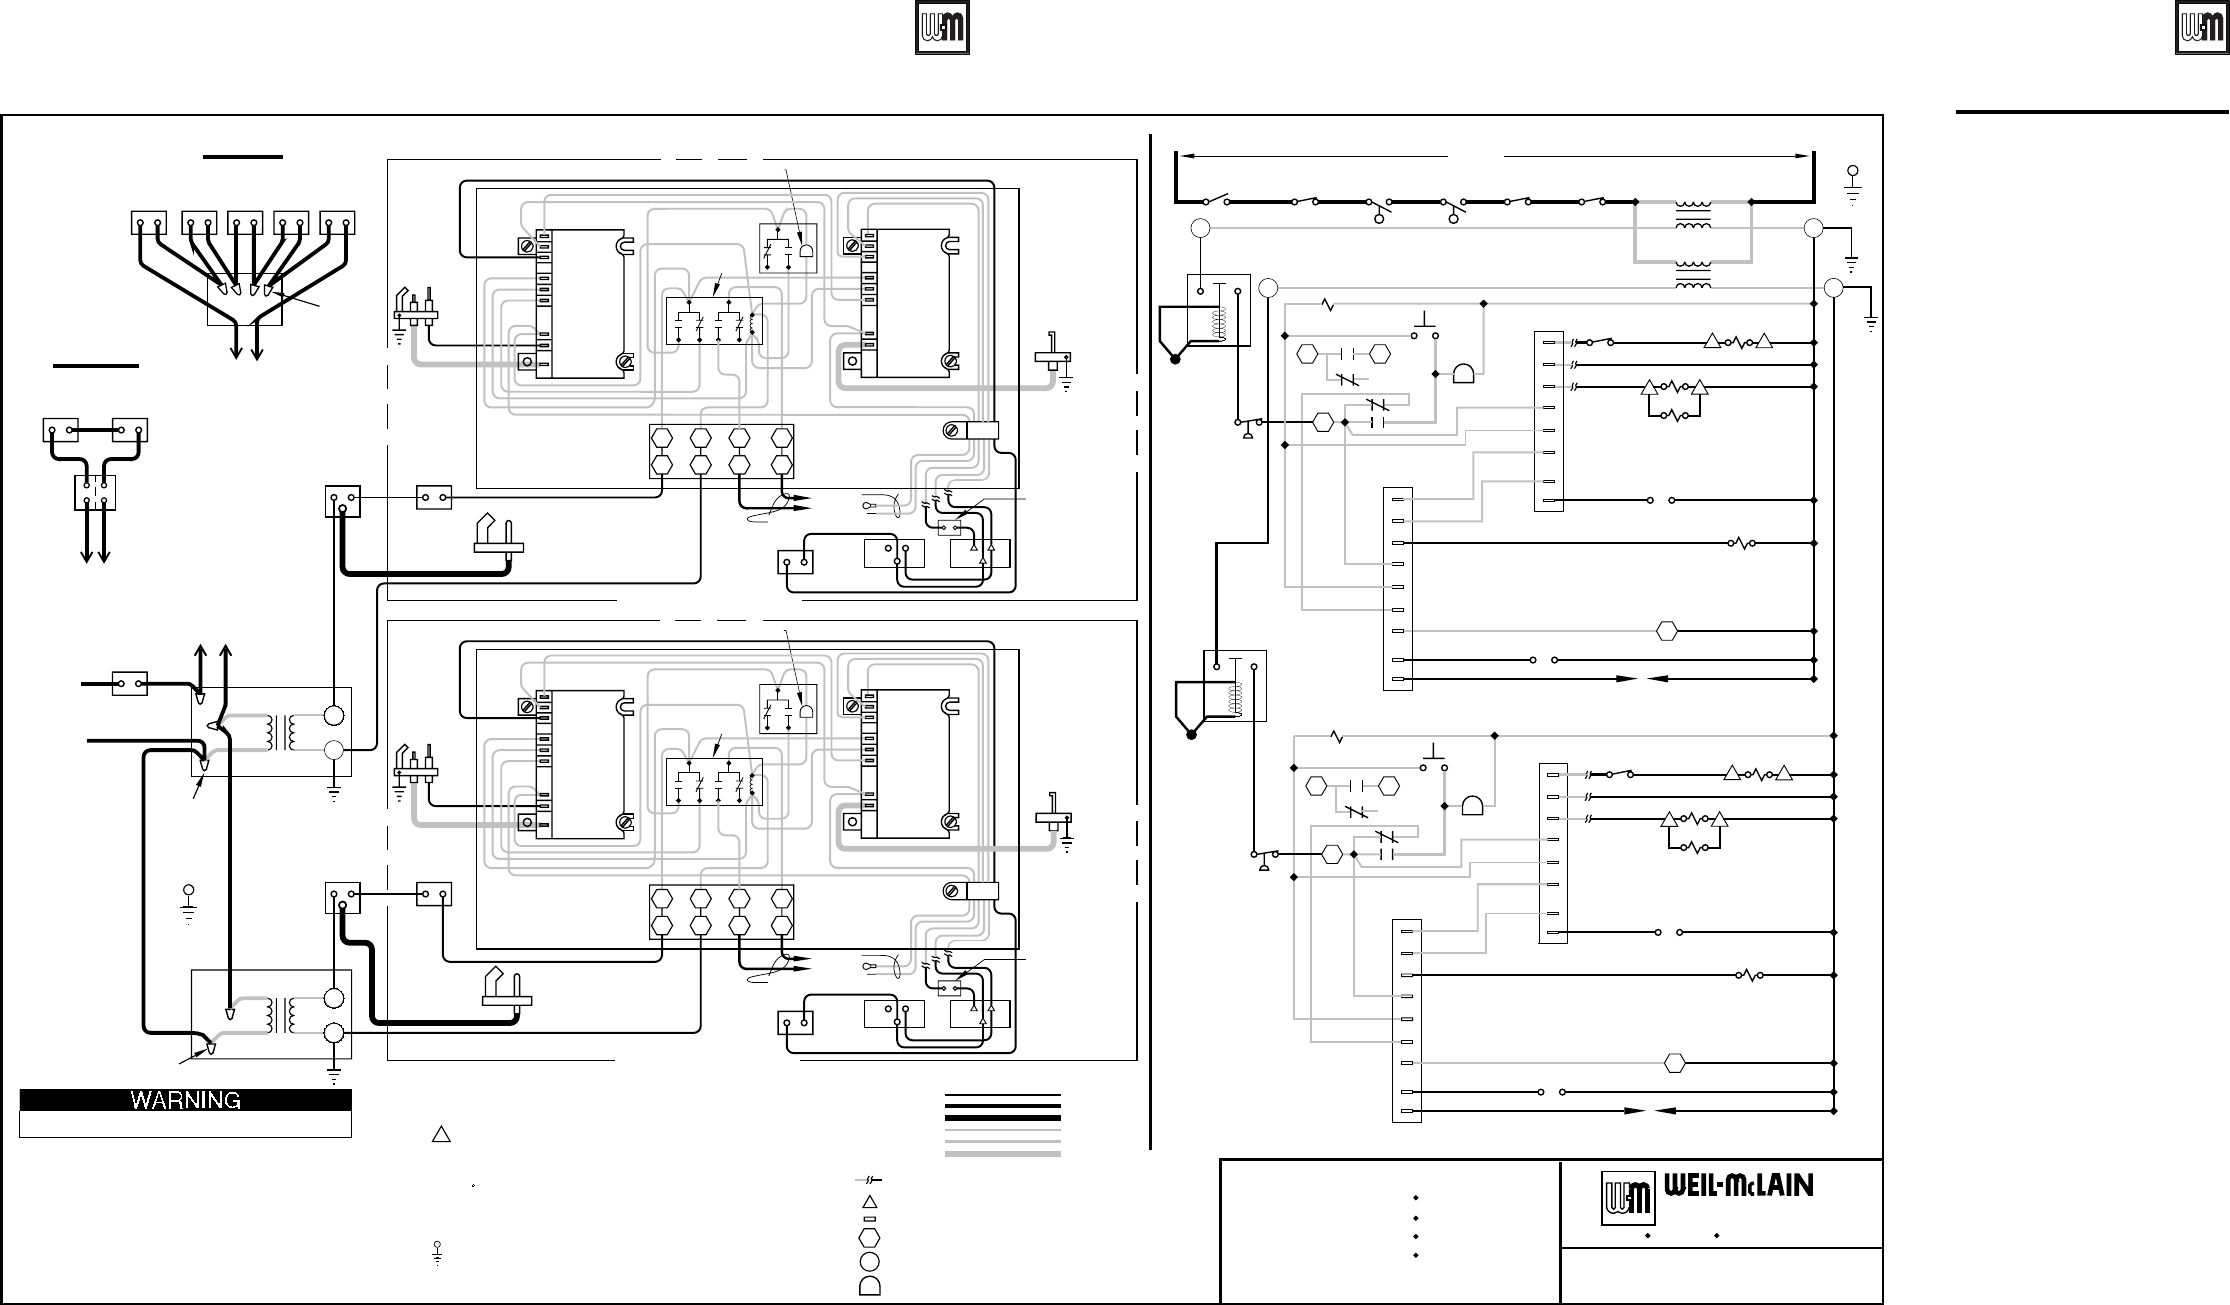 bg6 weil mclain boiler 6 20 series manual (page 6 of 11) Steam Boiler Wiring Schematics PDF at mifinder.co